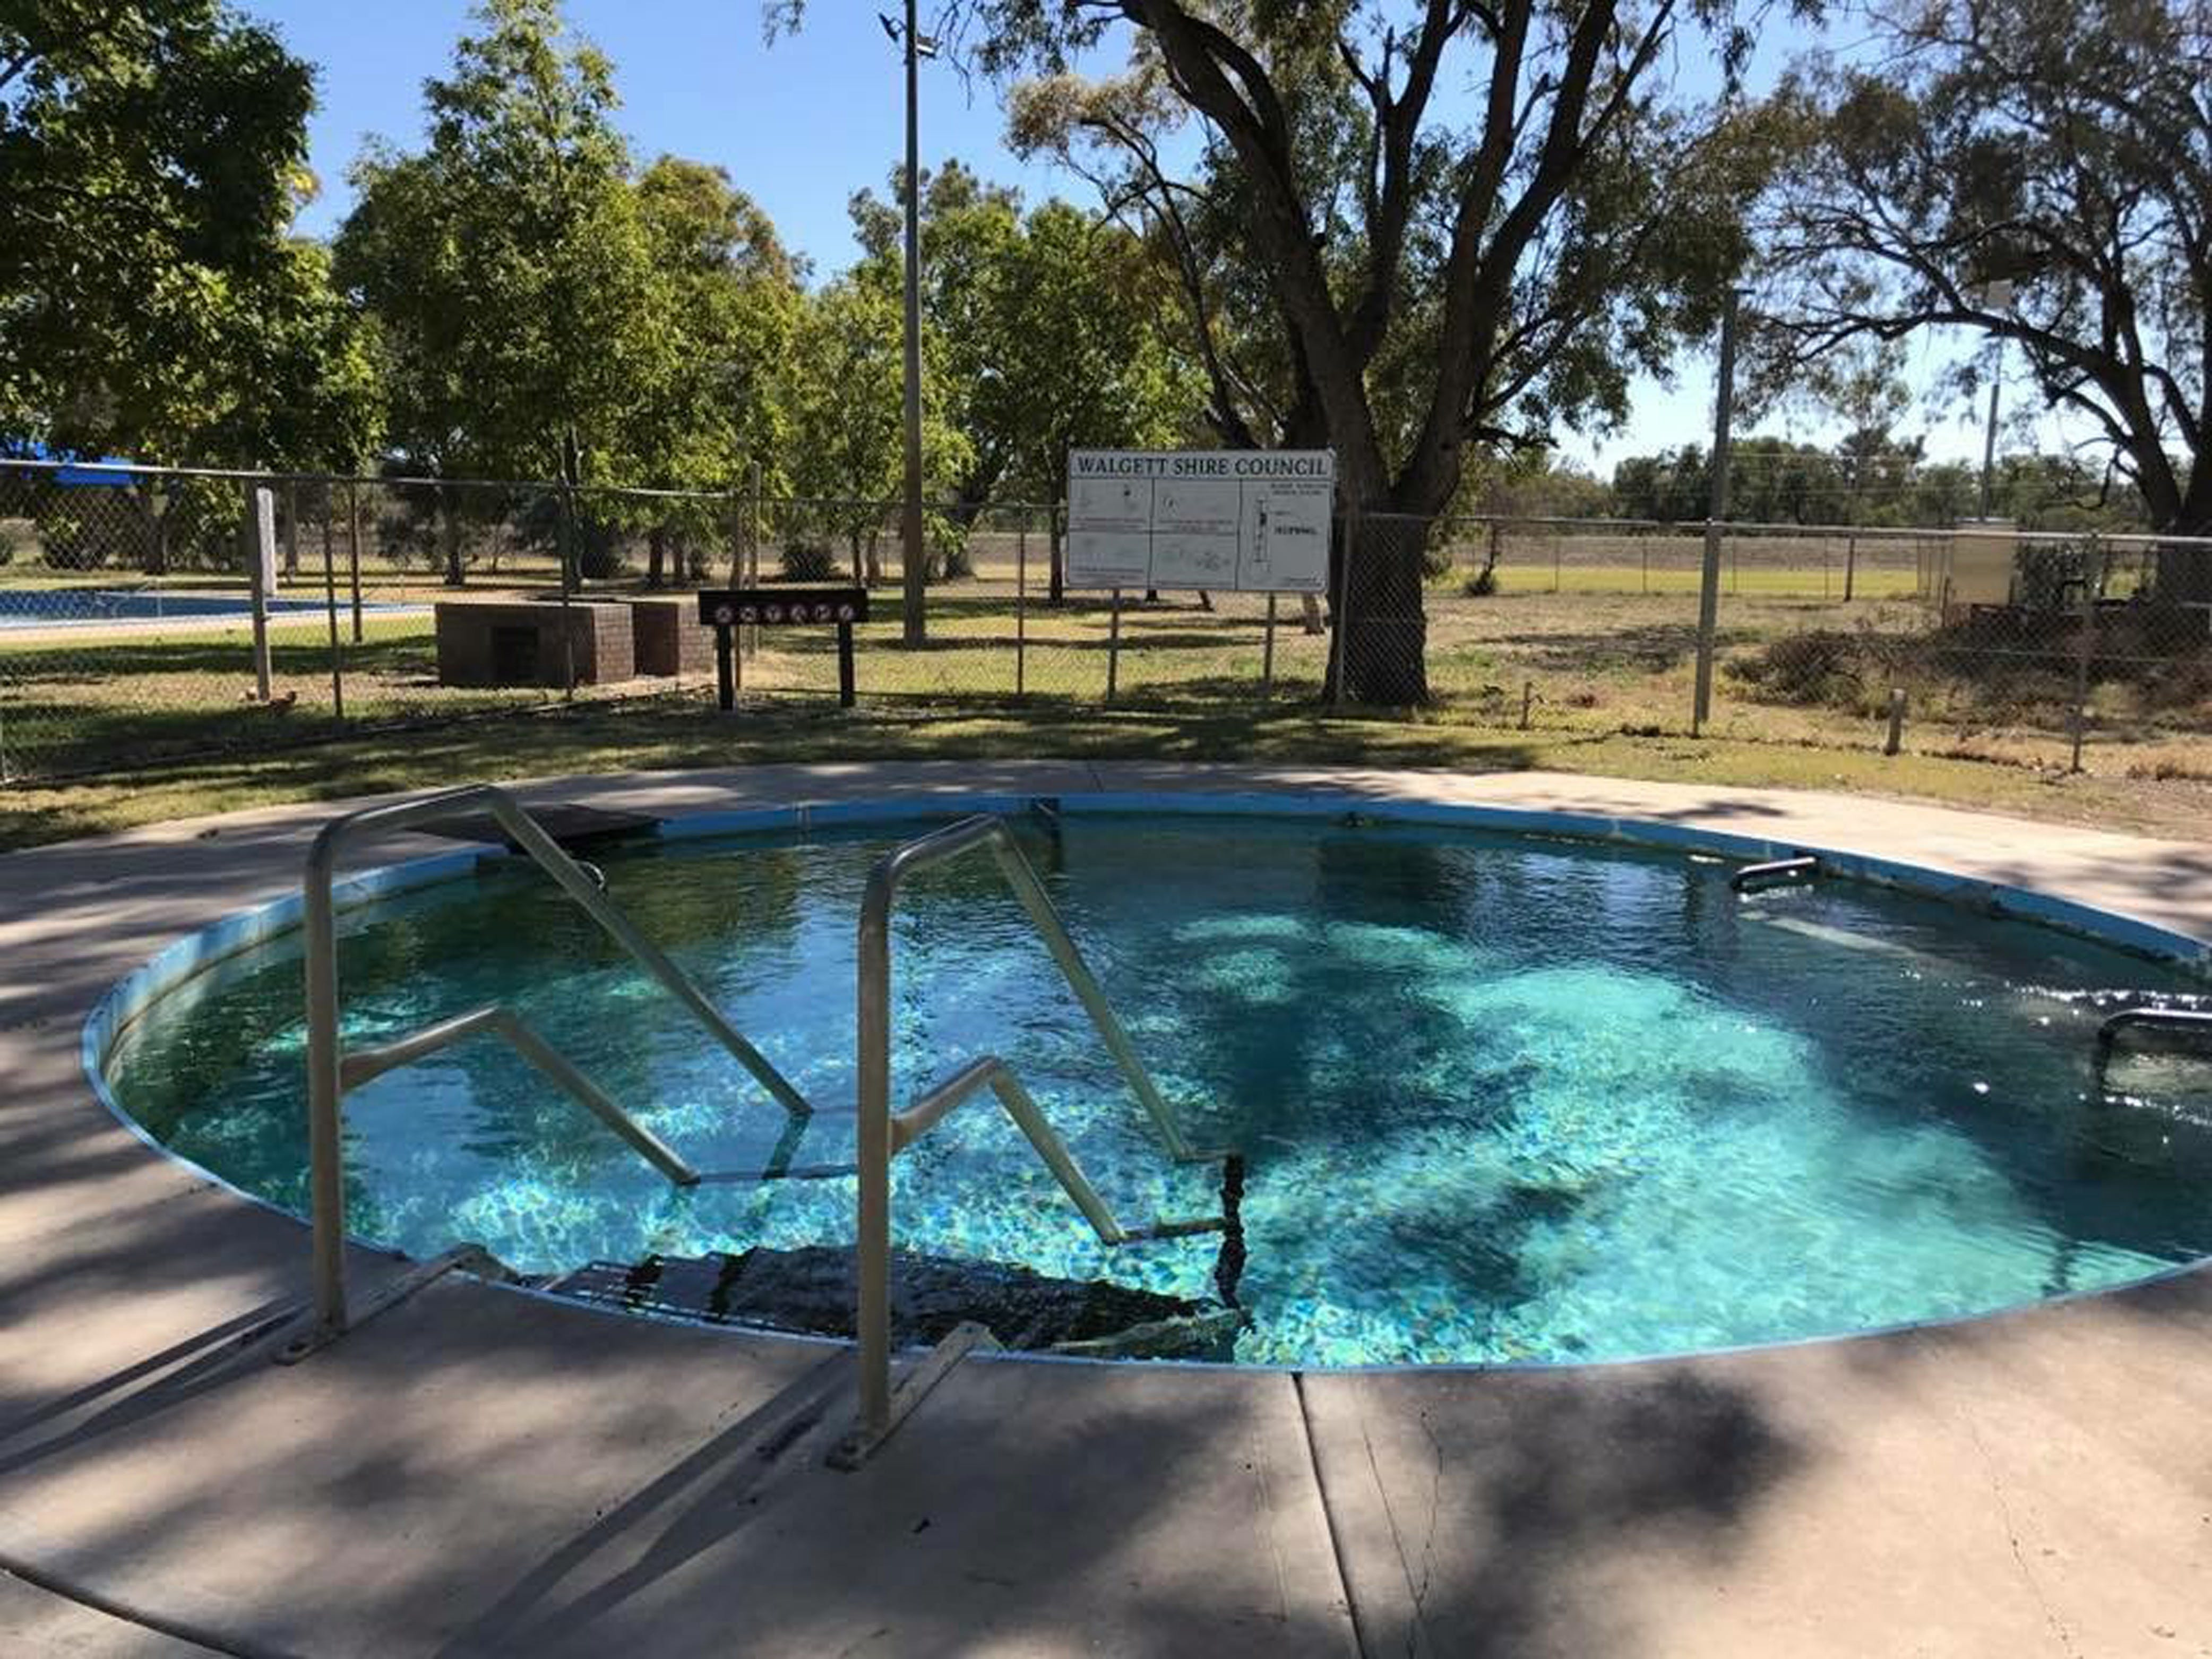 Walgett Artesian Bore Baths - Wagga Wagga Accommodation